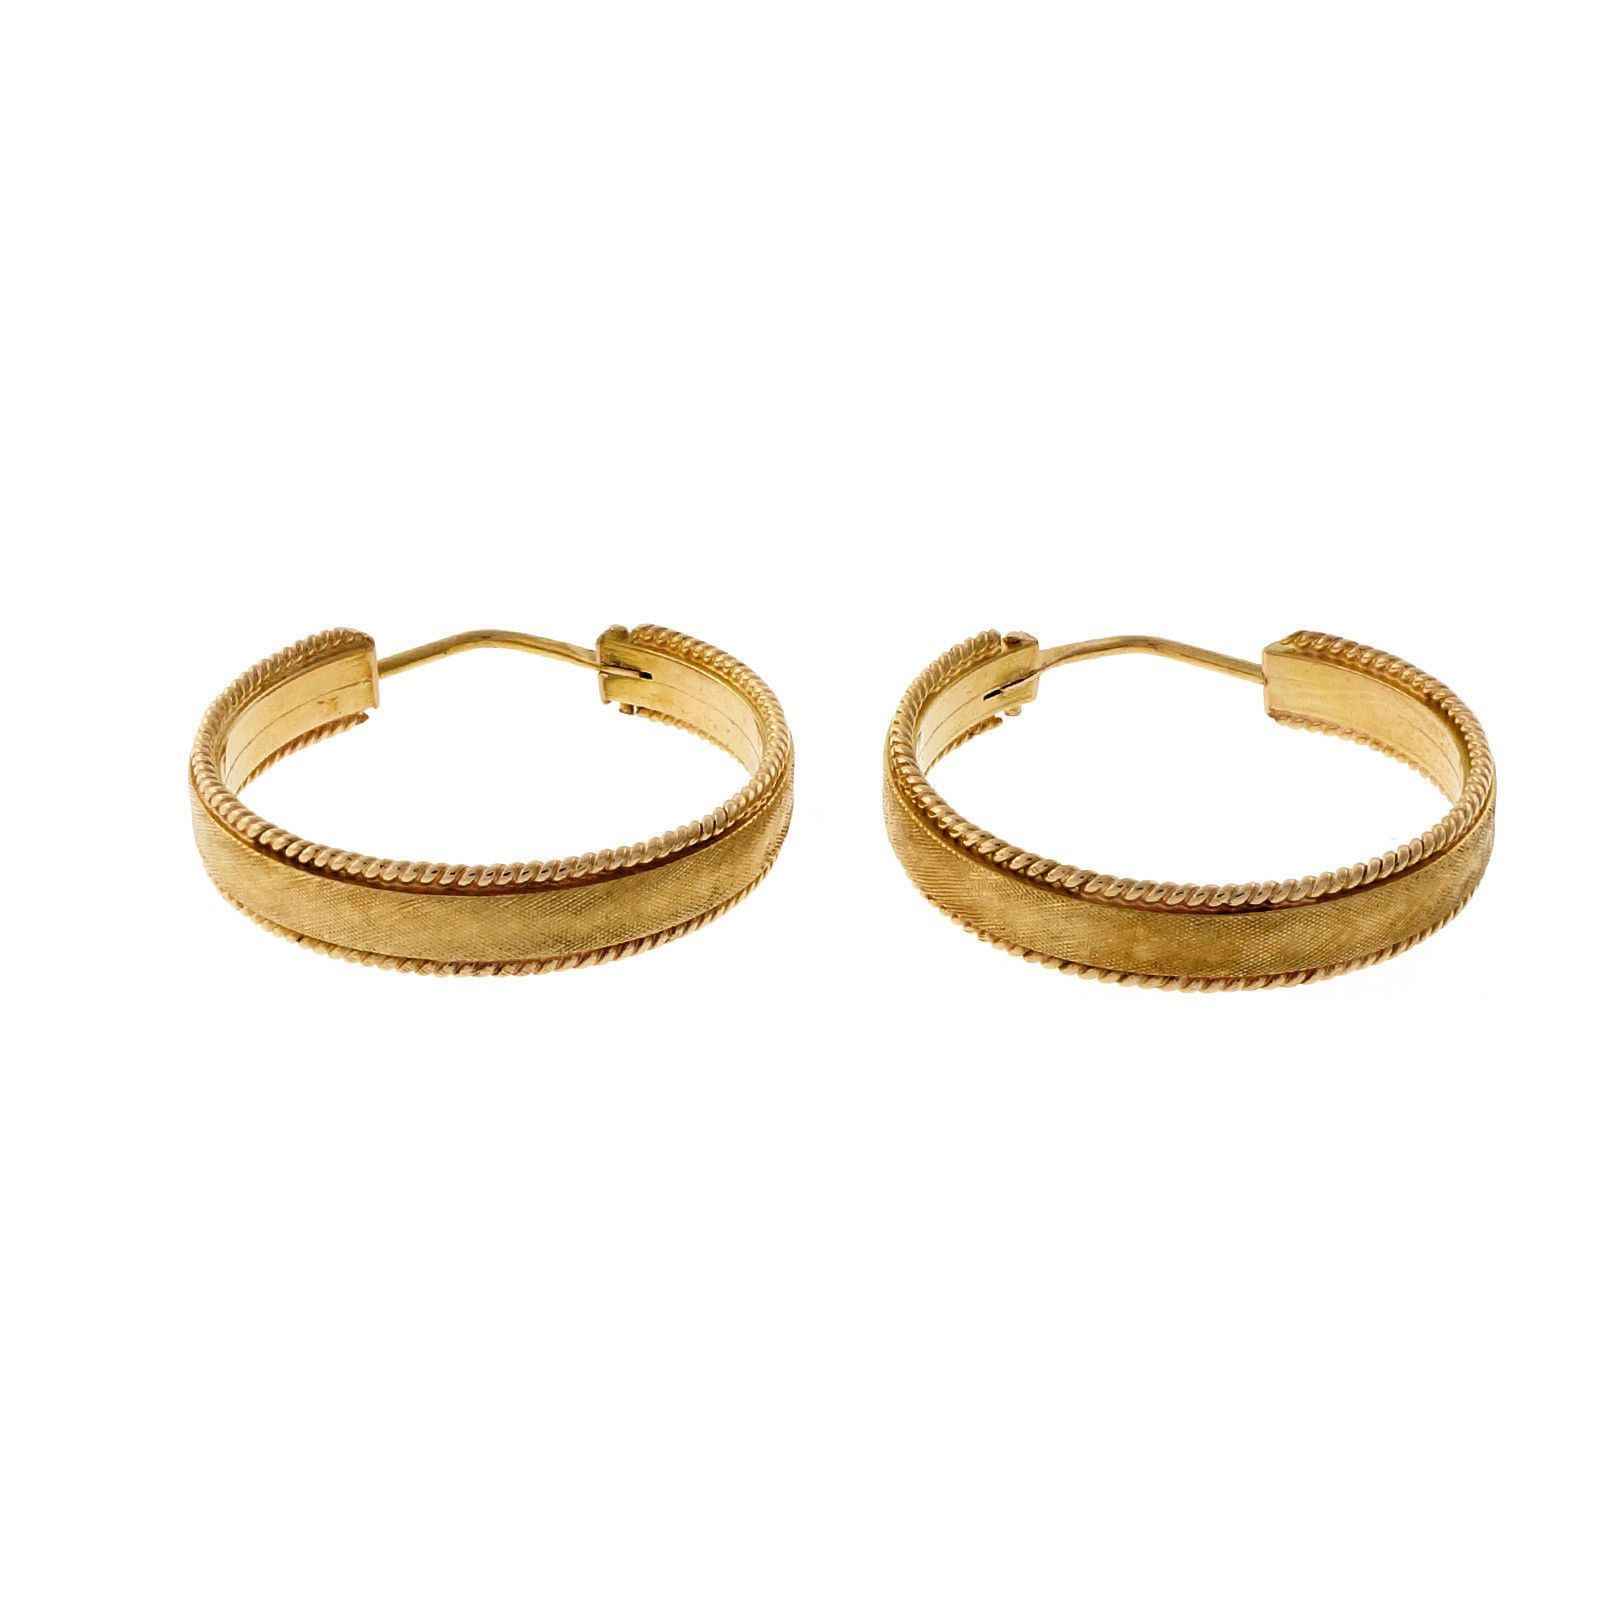 cc earrings fashion logo from products vintage chanel amarcord gold